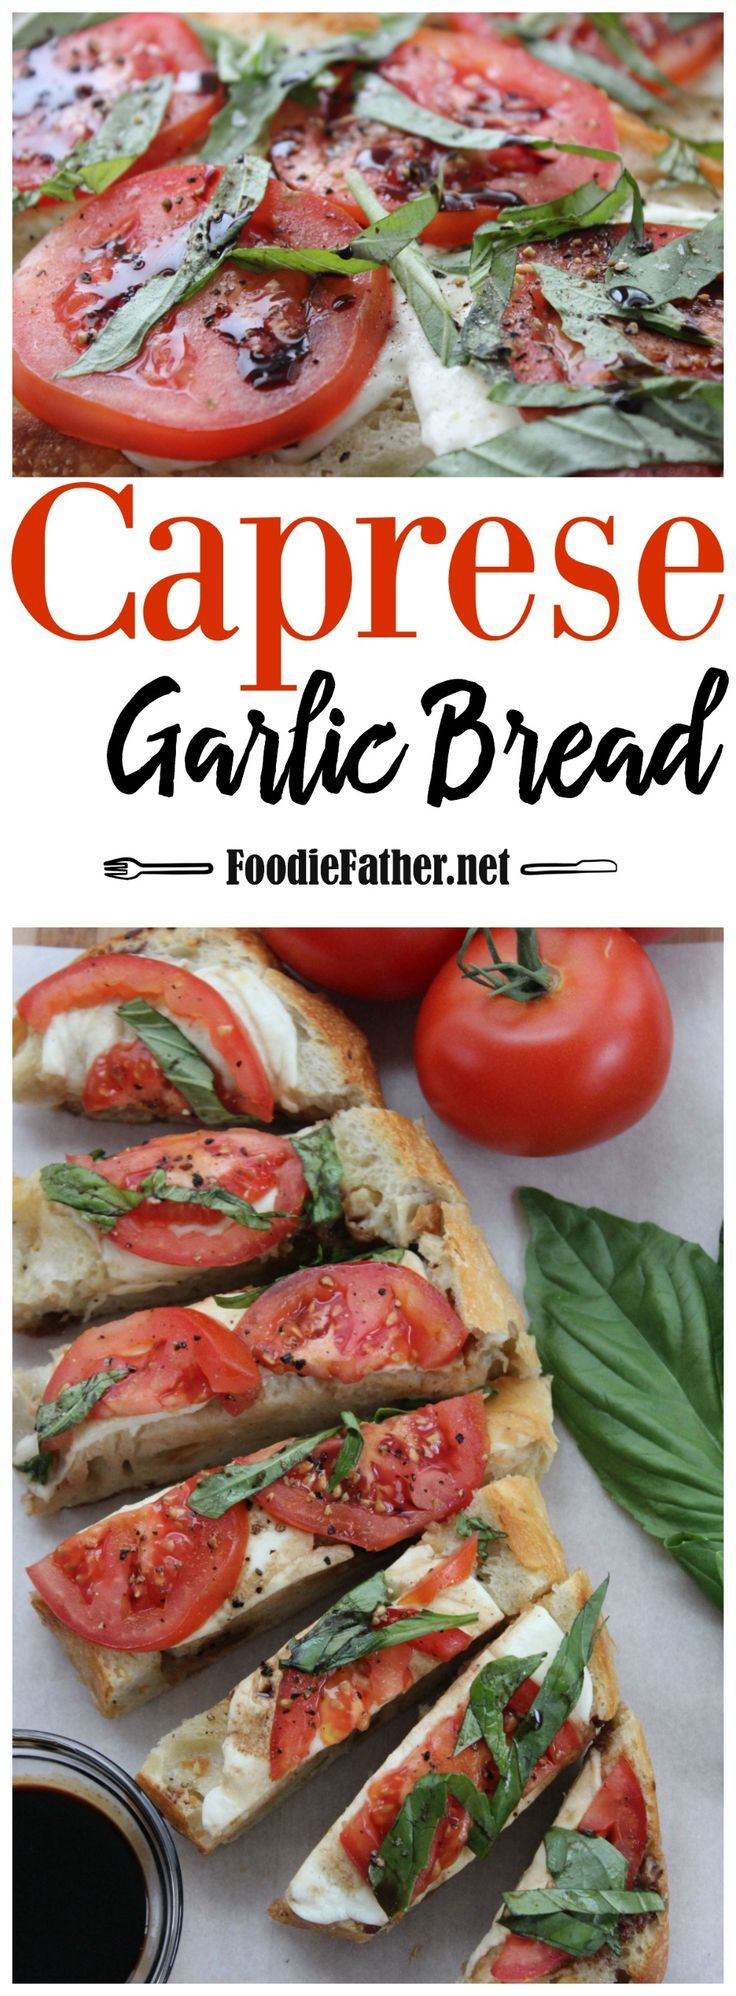 Caprese Garlic Bread Recipe Foodie Father